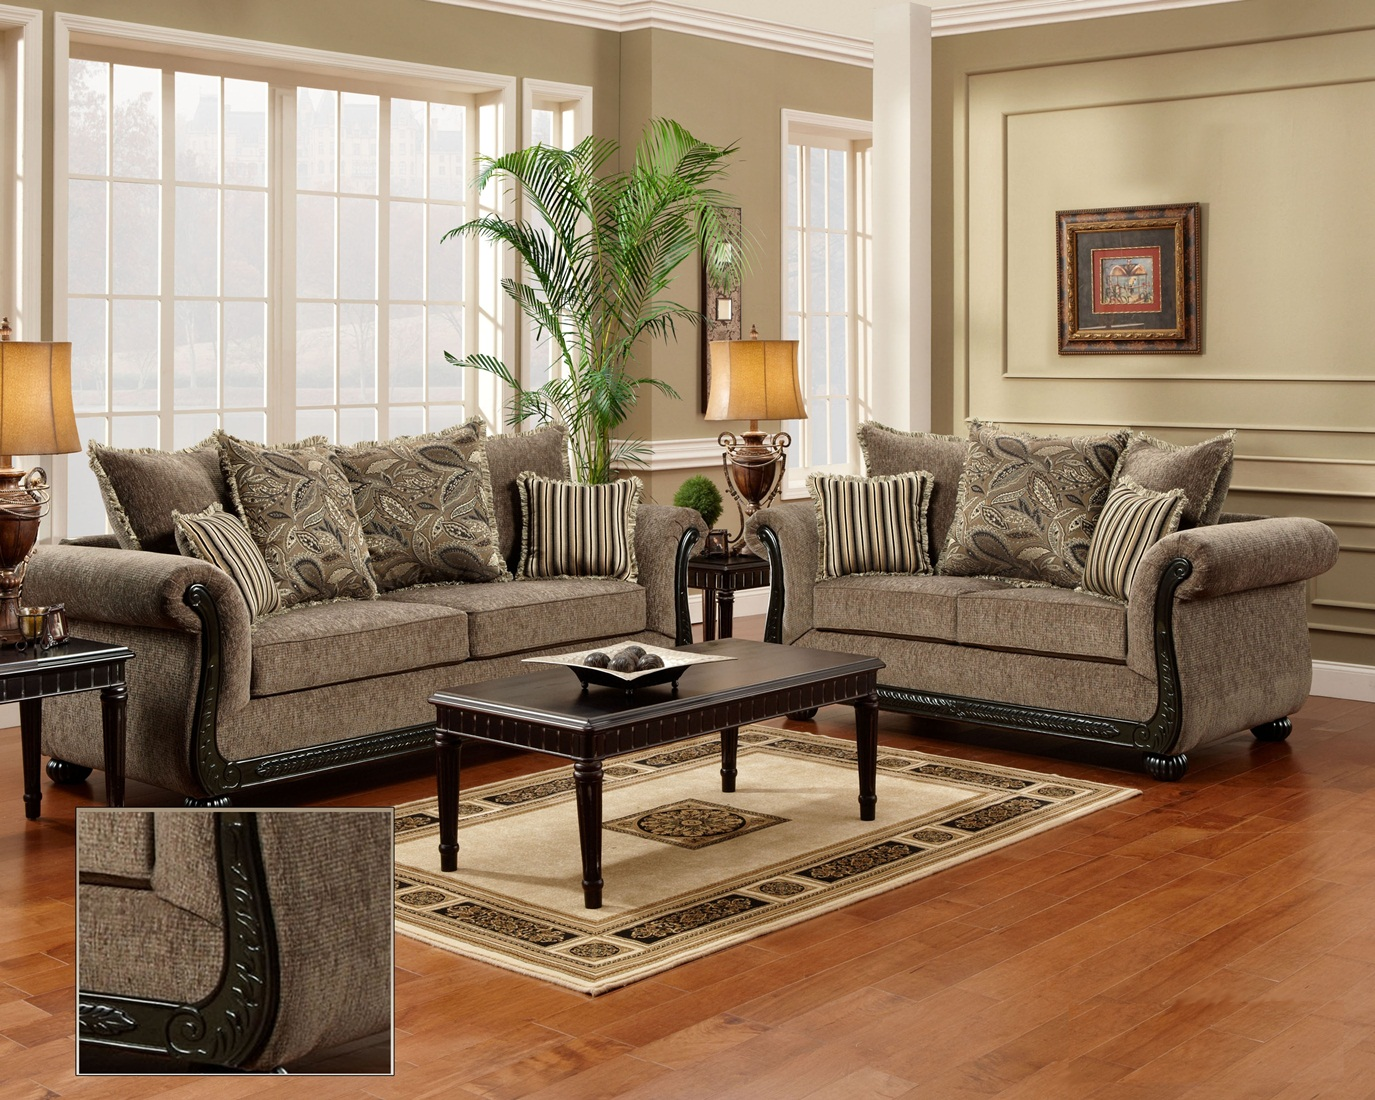 Dream java chenille sofa love seat living room furniture set wood trim